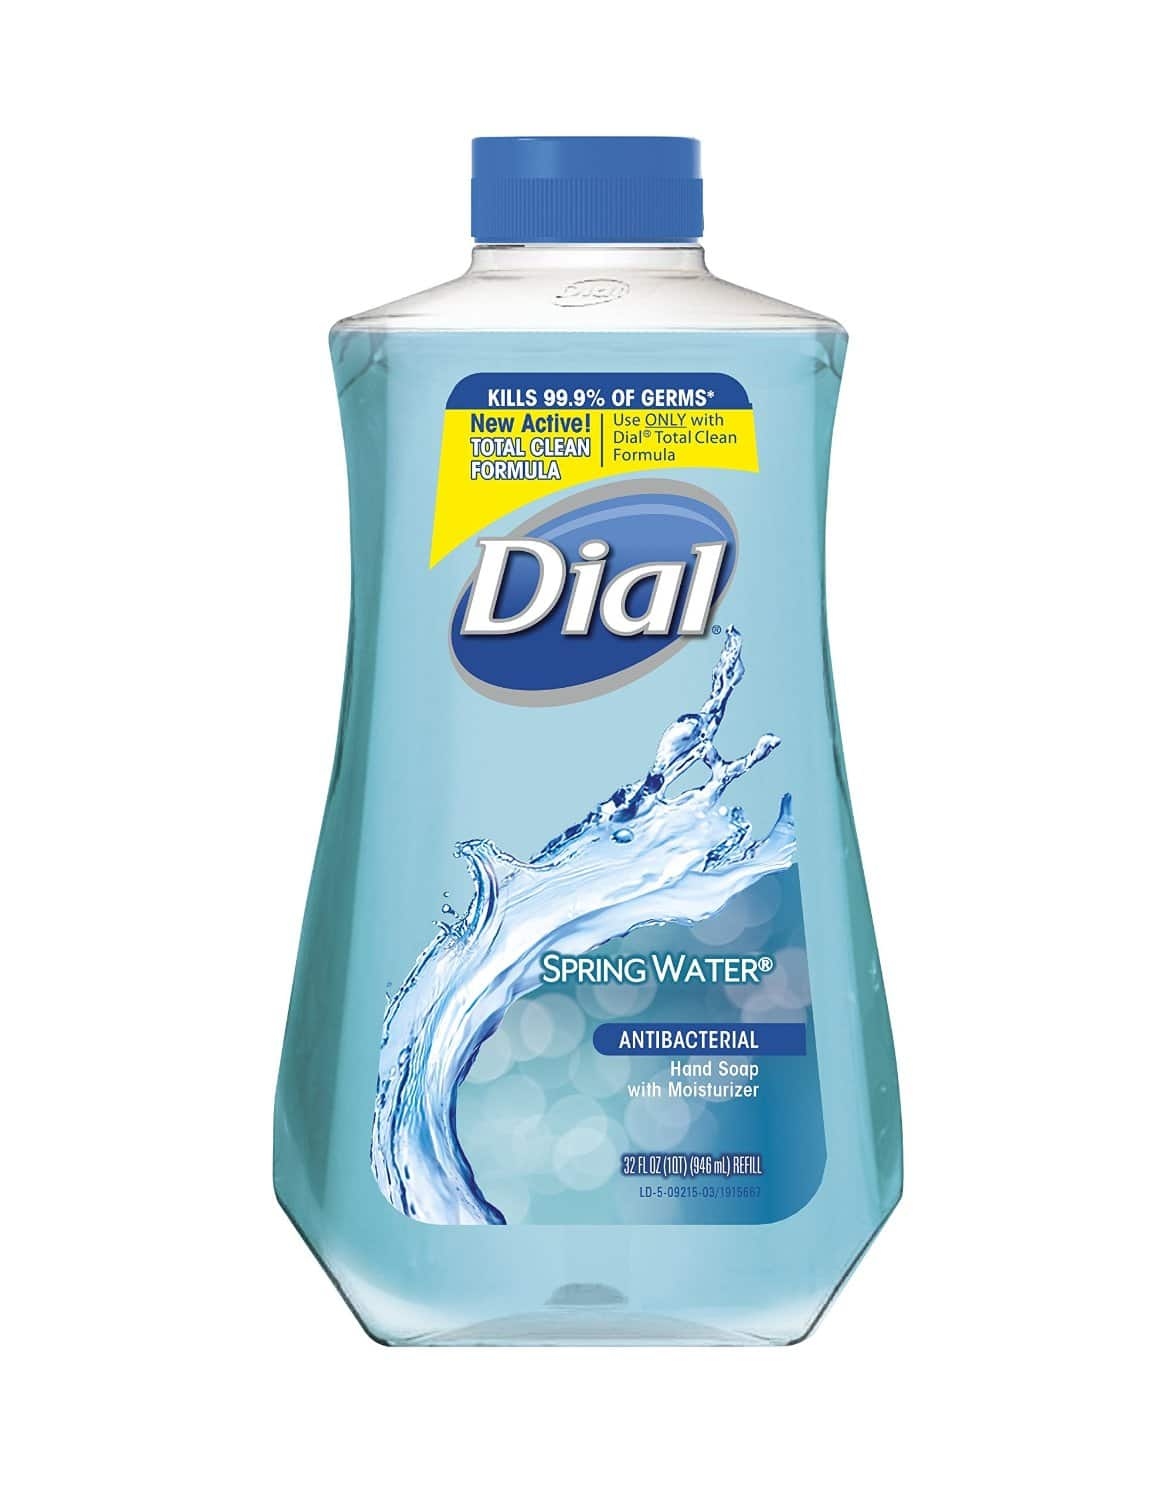 32oz Dial Complete Antibacterial Hand Wash Refill (Spring Water)  $3 + Free Shipping